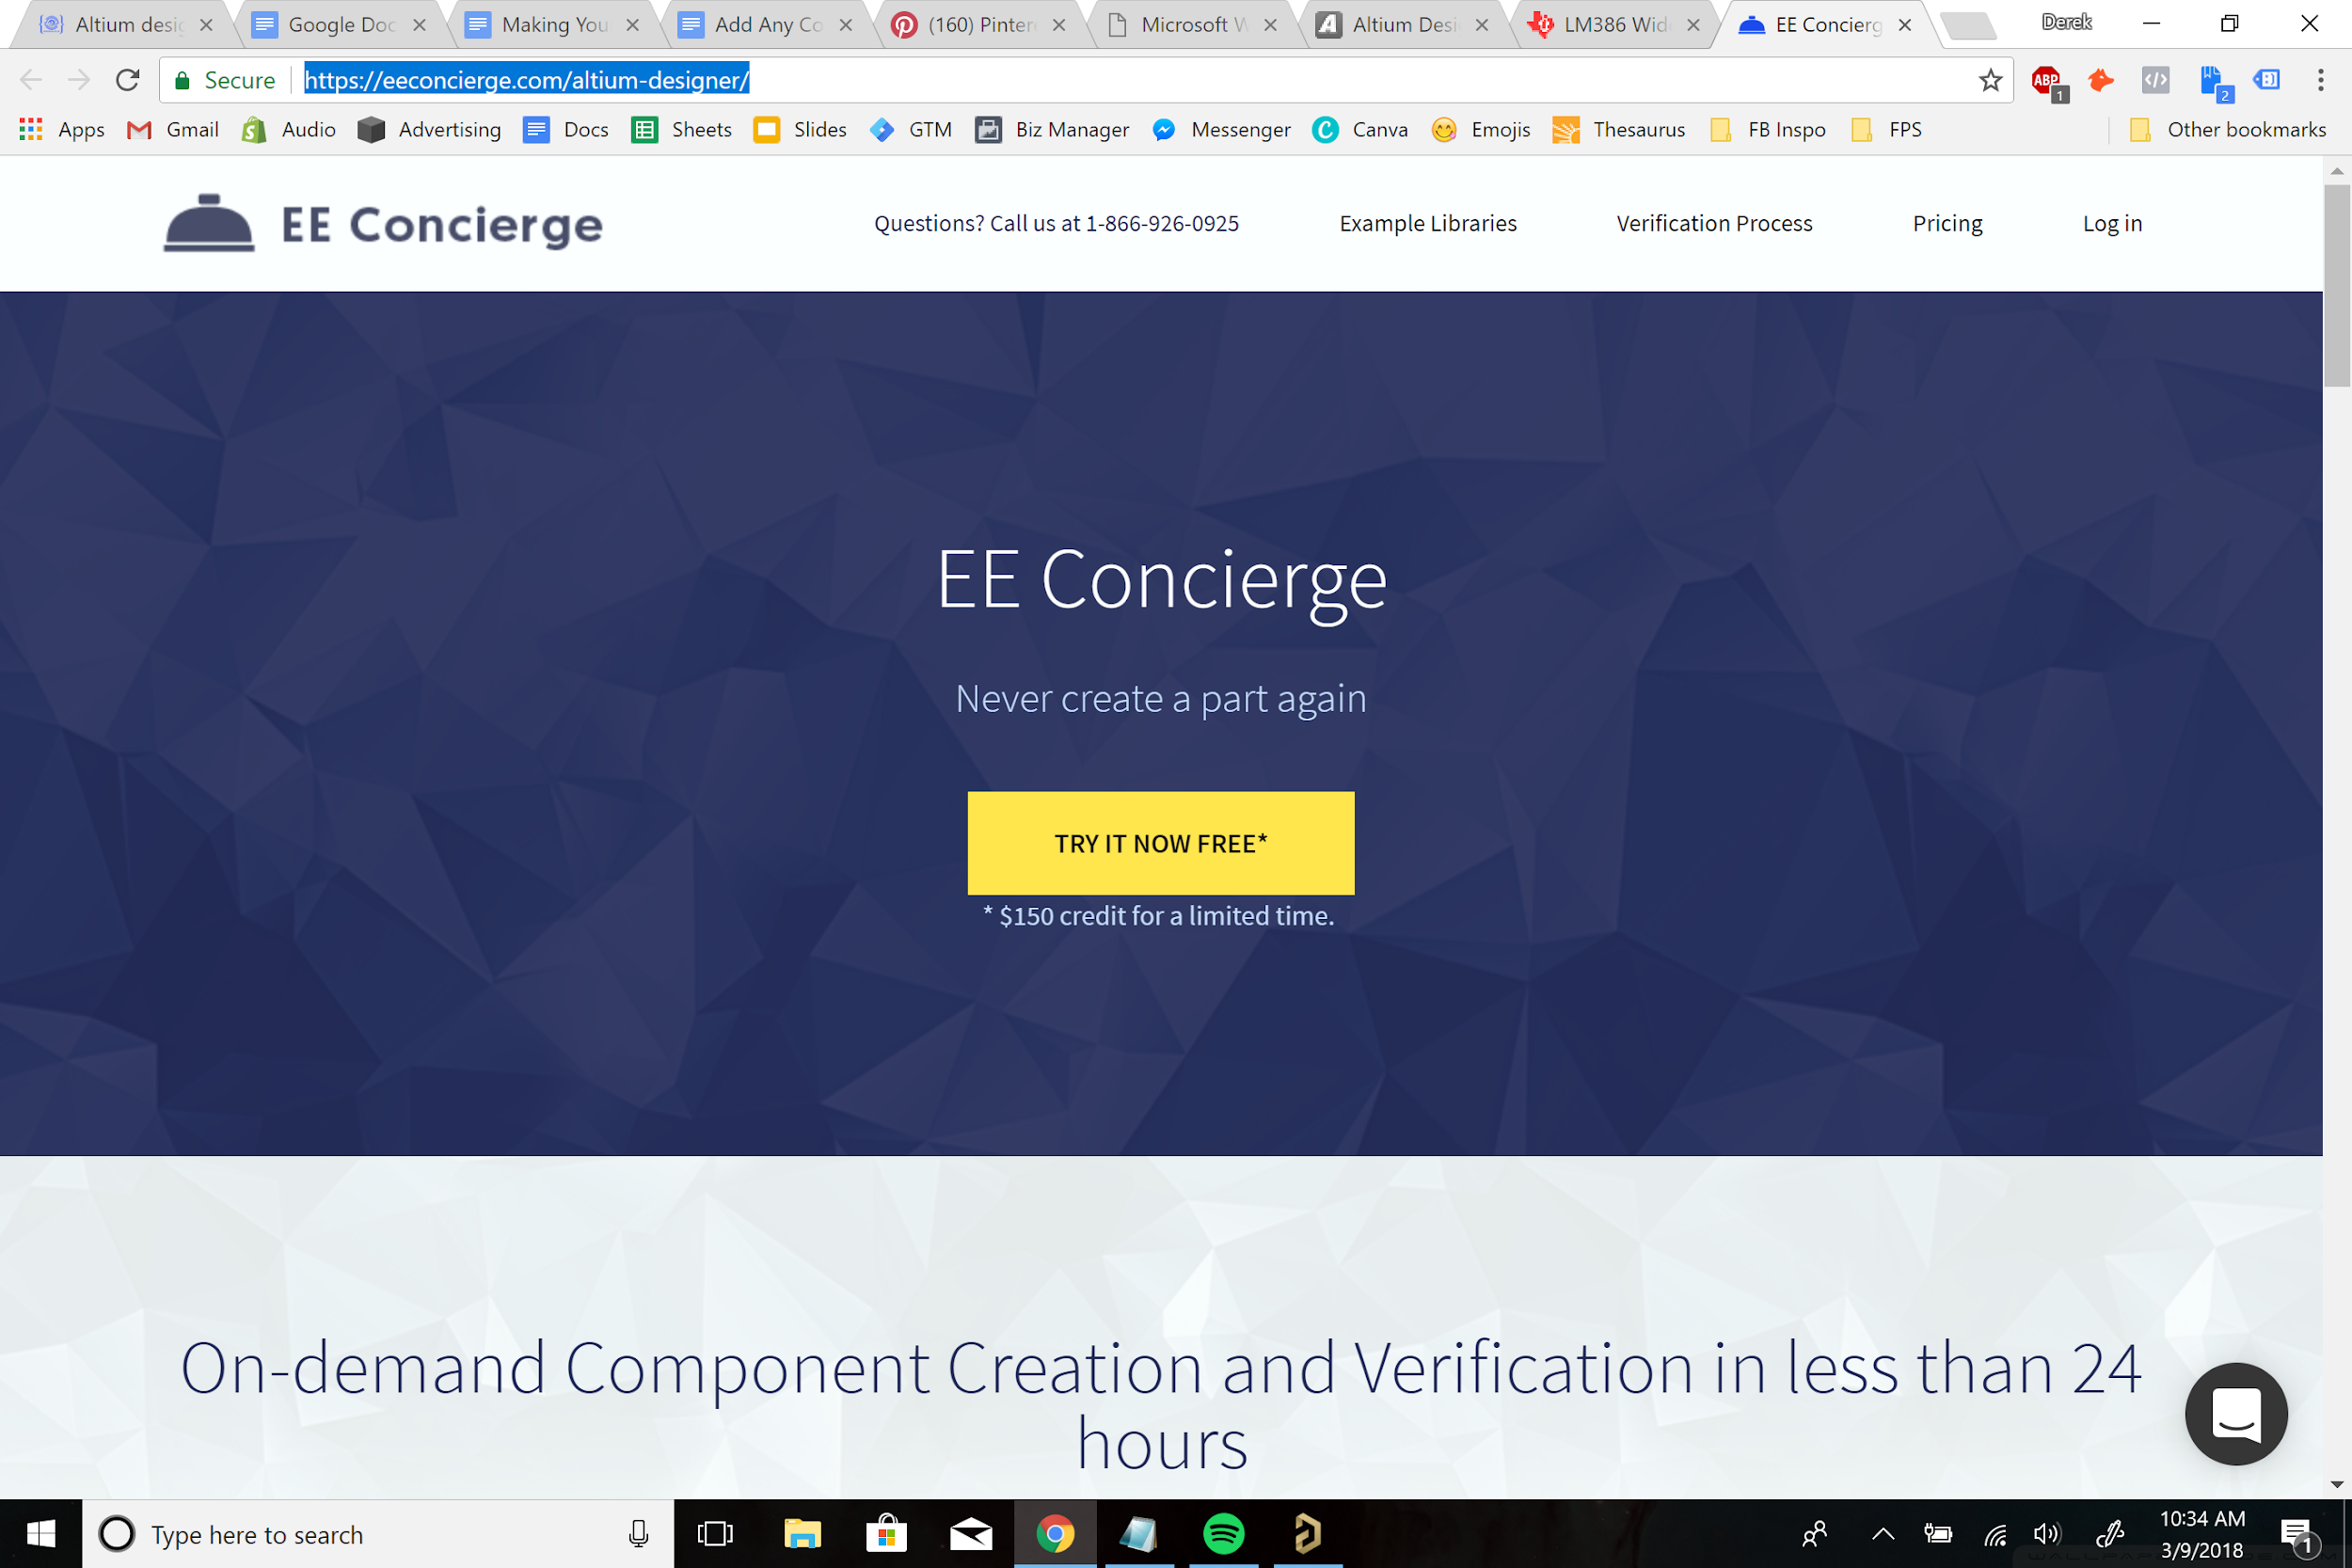 Add Any Component To Your Design With Unified Libraries Best Free Pcb Software39s Printed Circuit Board Software Screenshot Of Altiums Ee Concierge Service